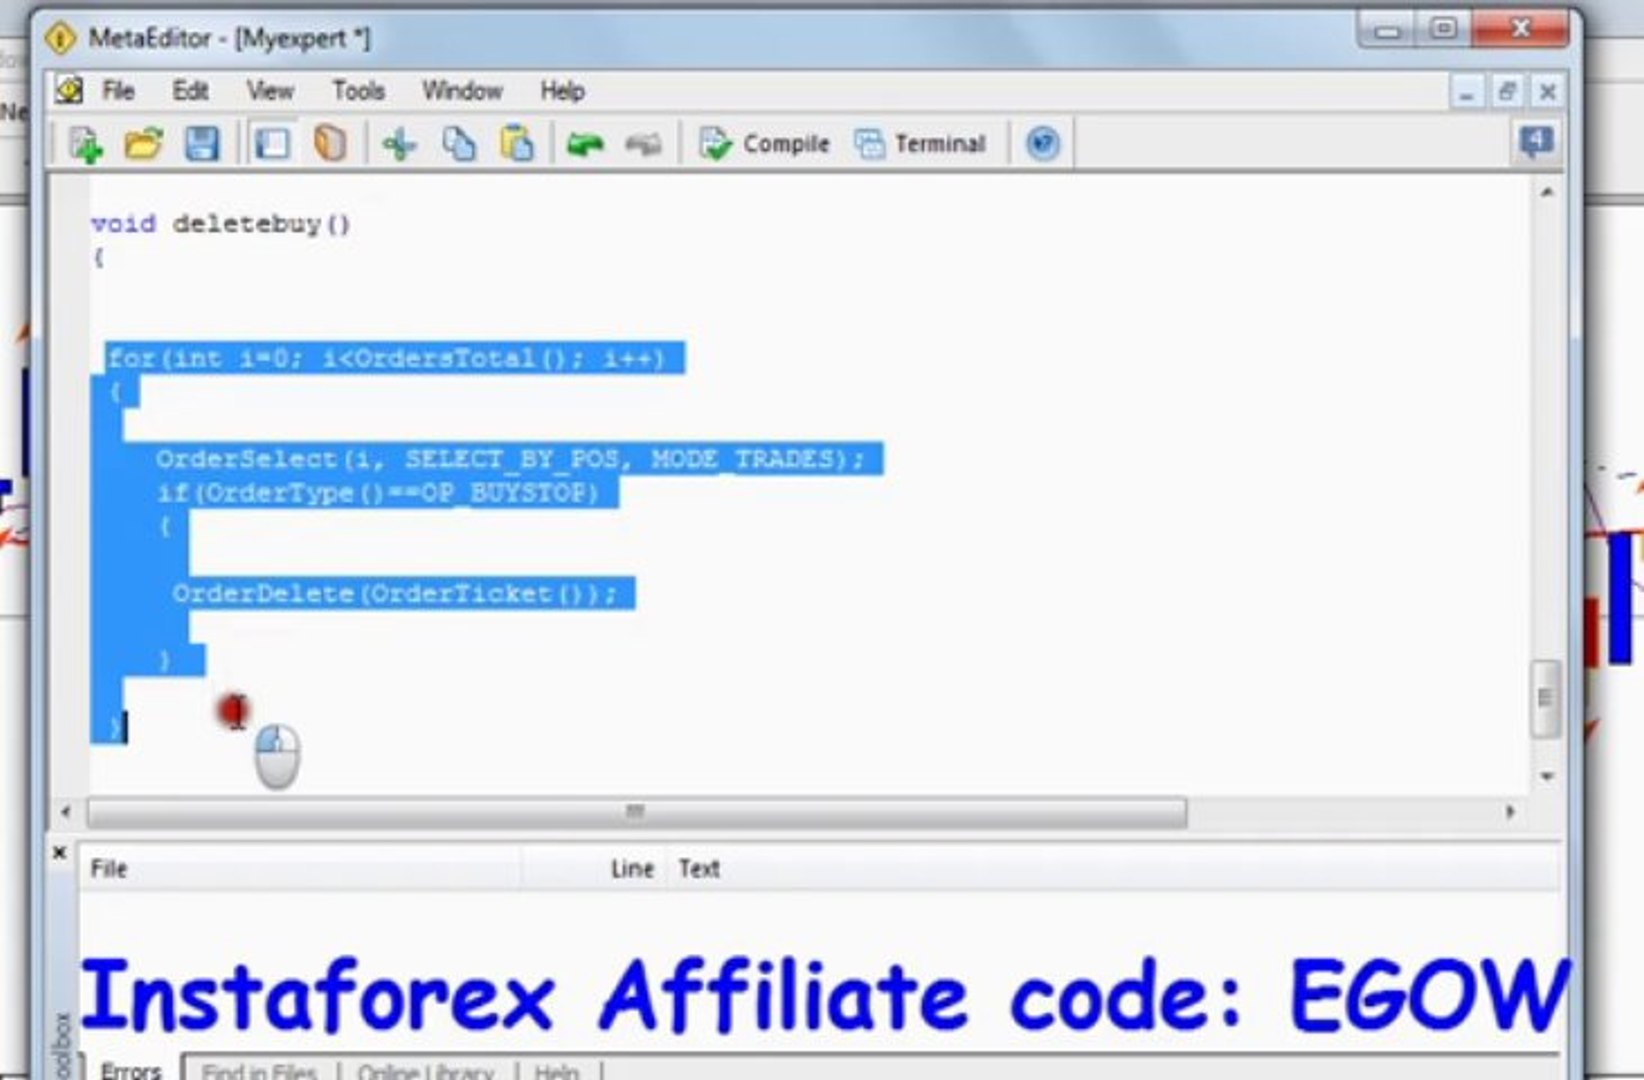 Mql4 Programming tutorial 23 - Orderdelete function